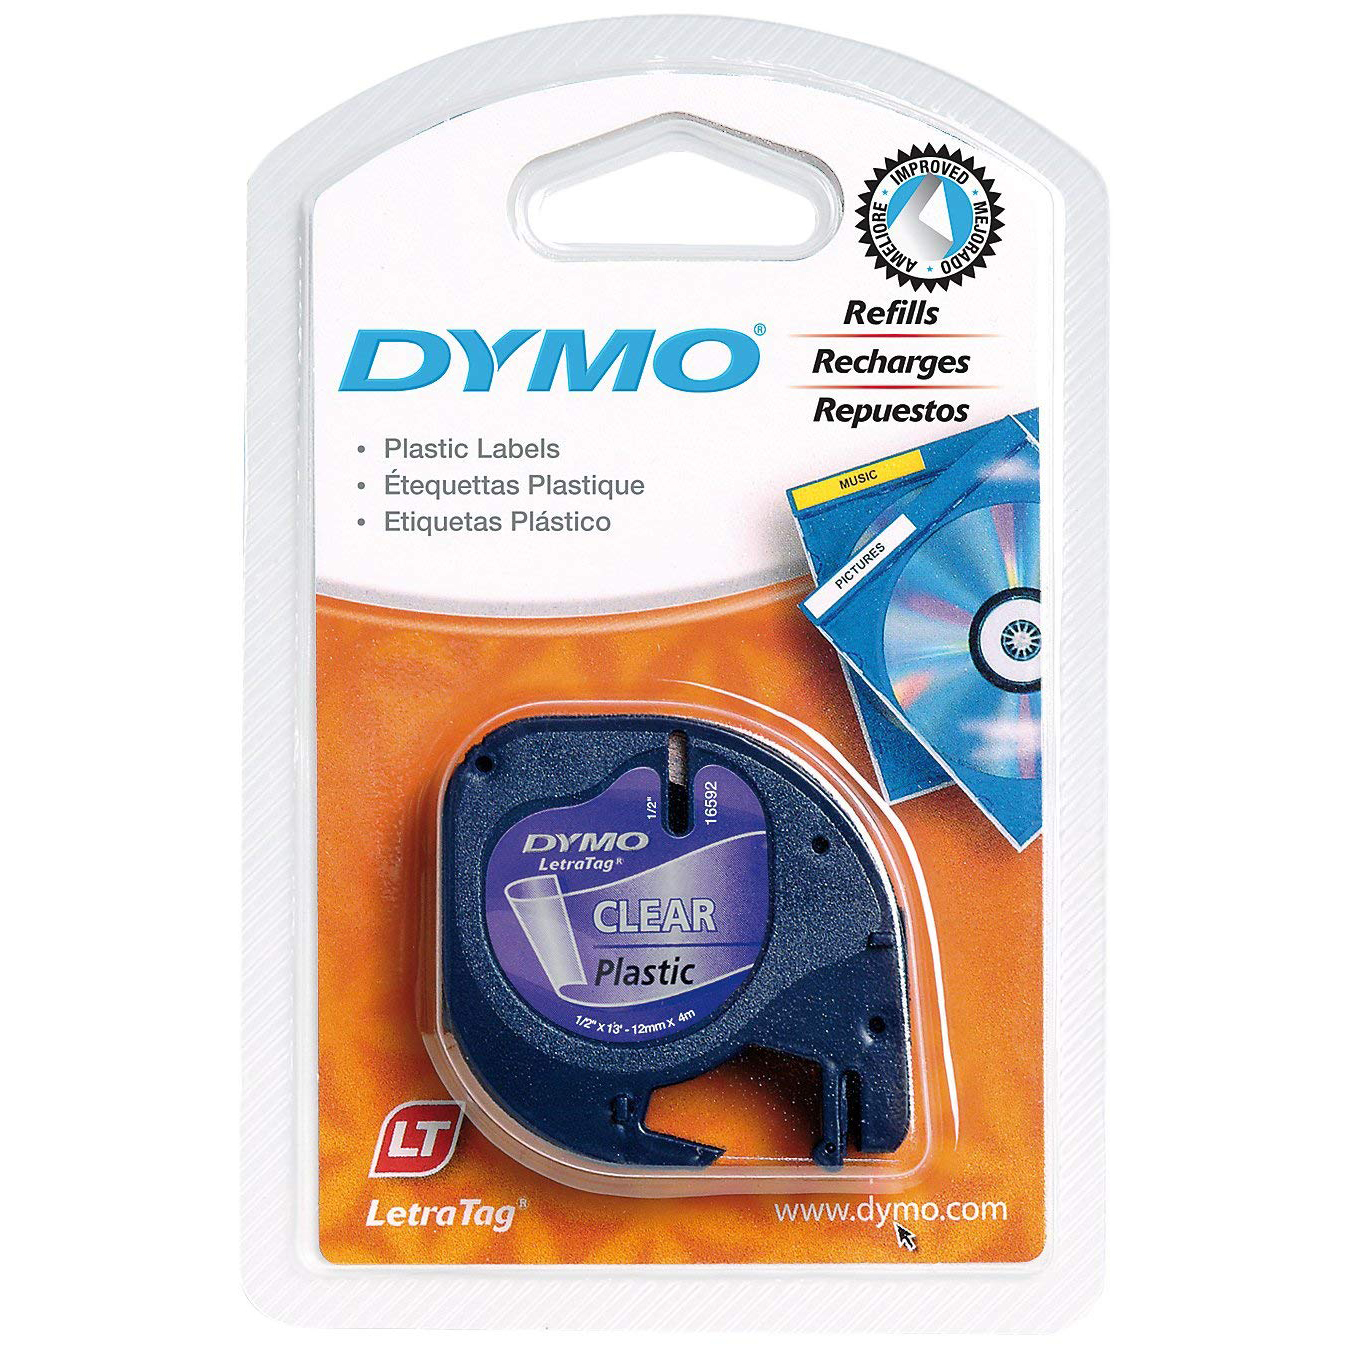 Dymo LetraTag S0721530 (12267) Plastic Label Tape 12mm x 4m - Black on Transparent (pc)